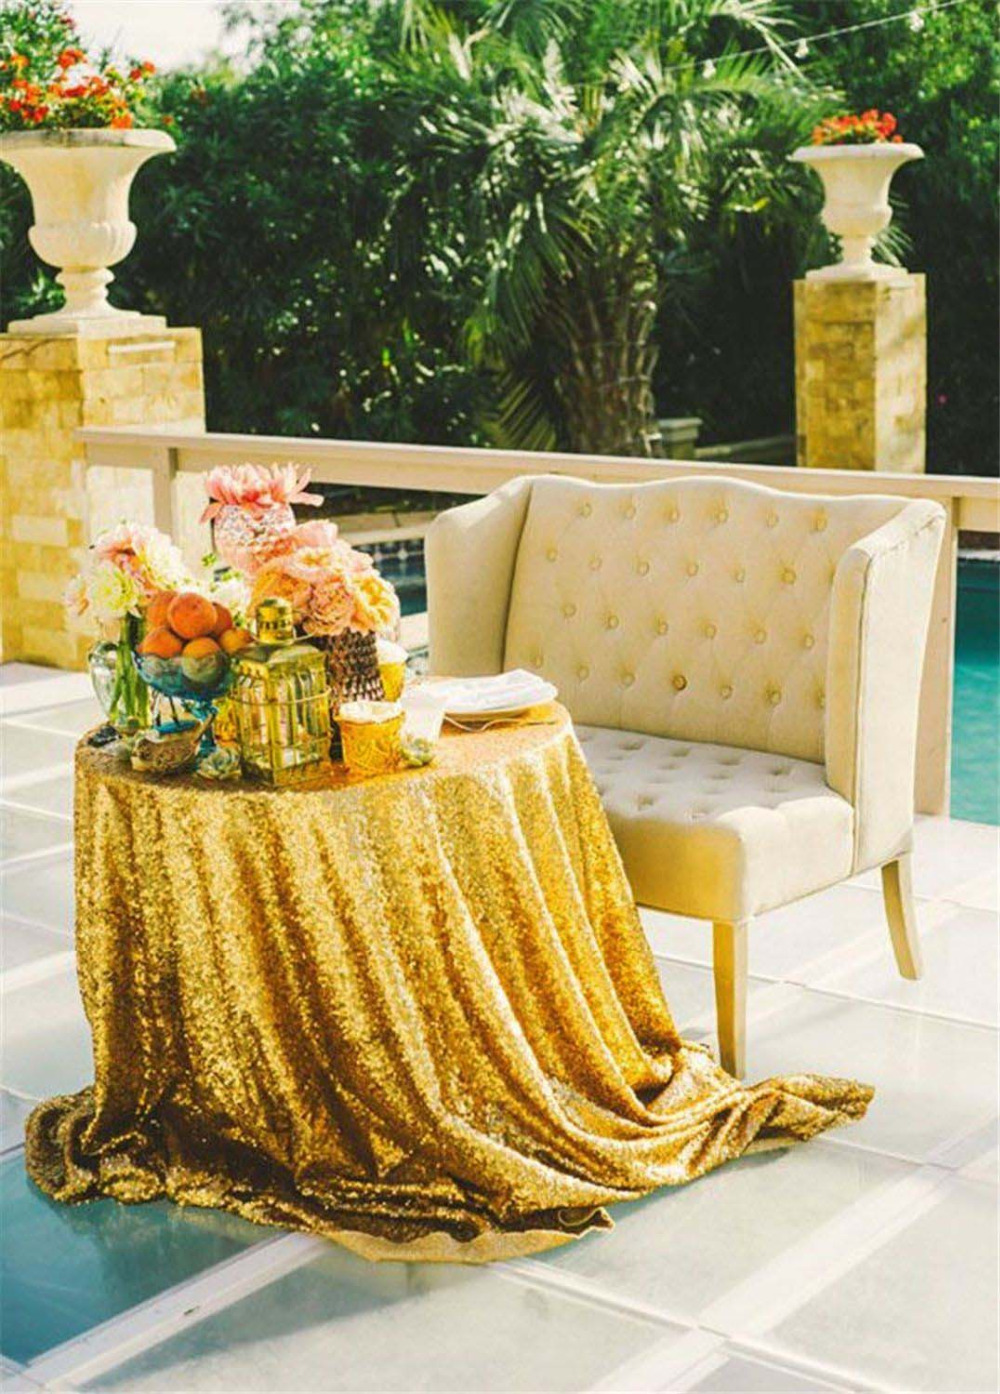 96 inch round tablecloth - 96 Inch Round Gold Sequin Tablecloth Wedding Beautiful Gold Sequin Table Cloth Overlay Cover